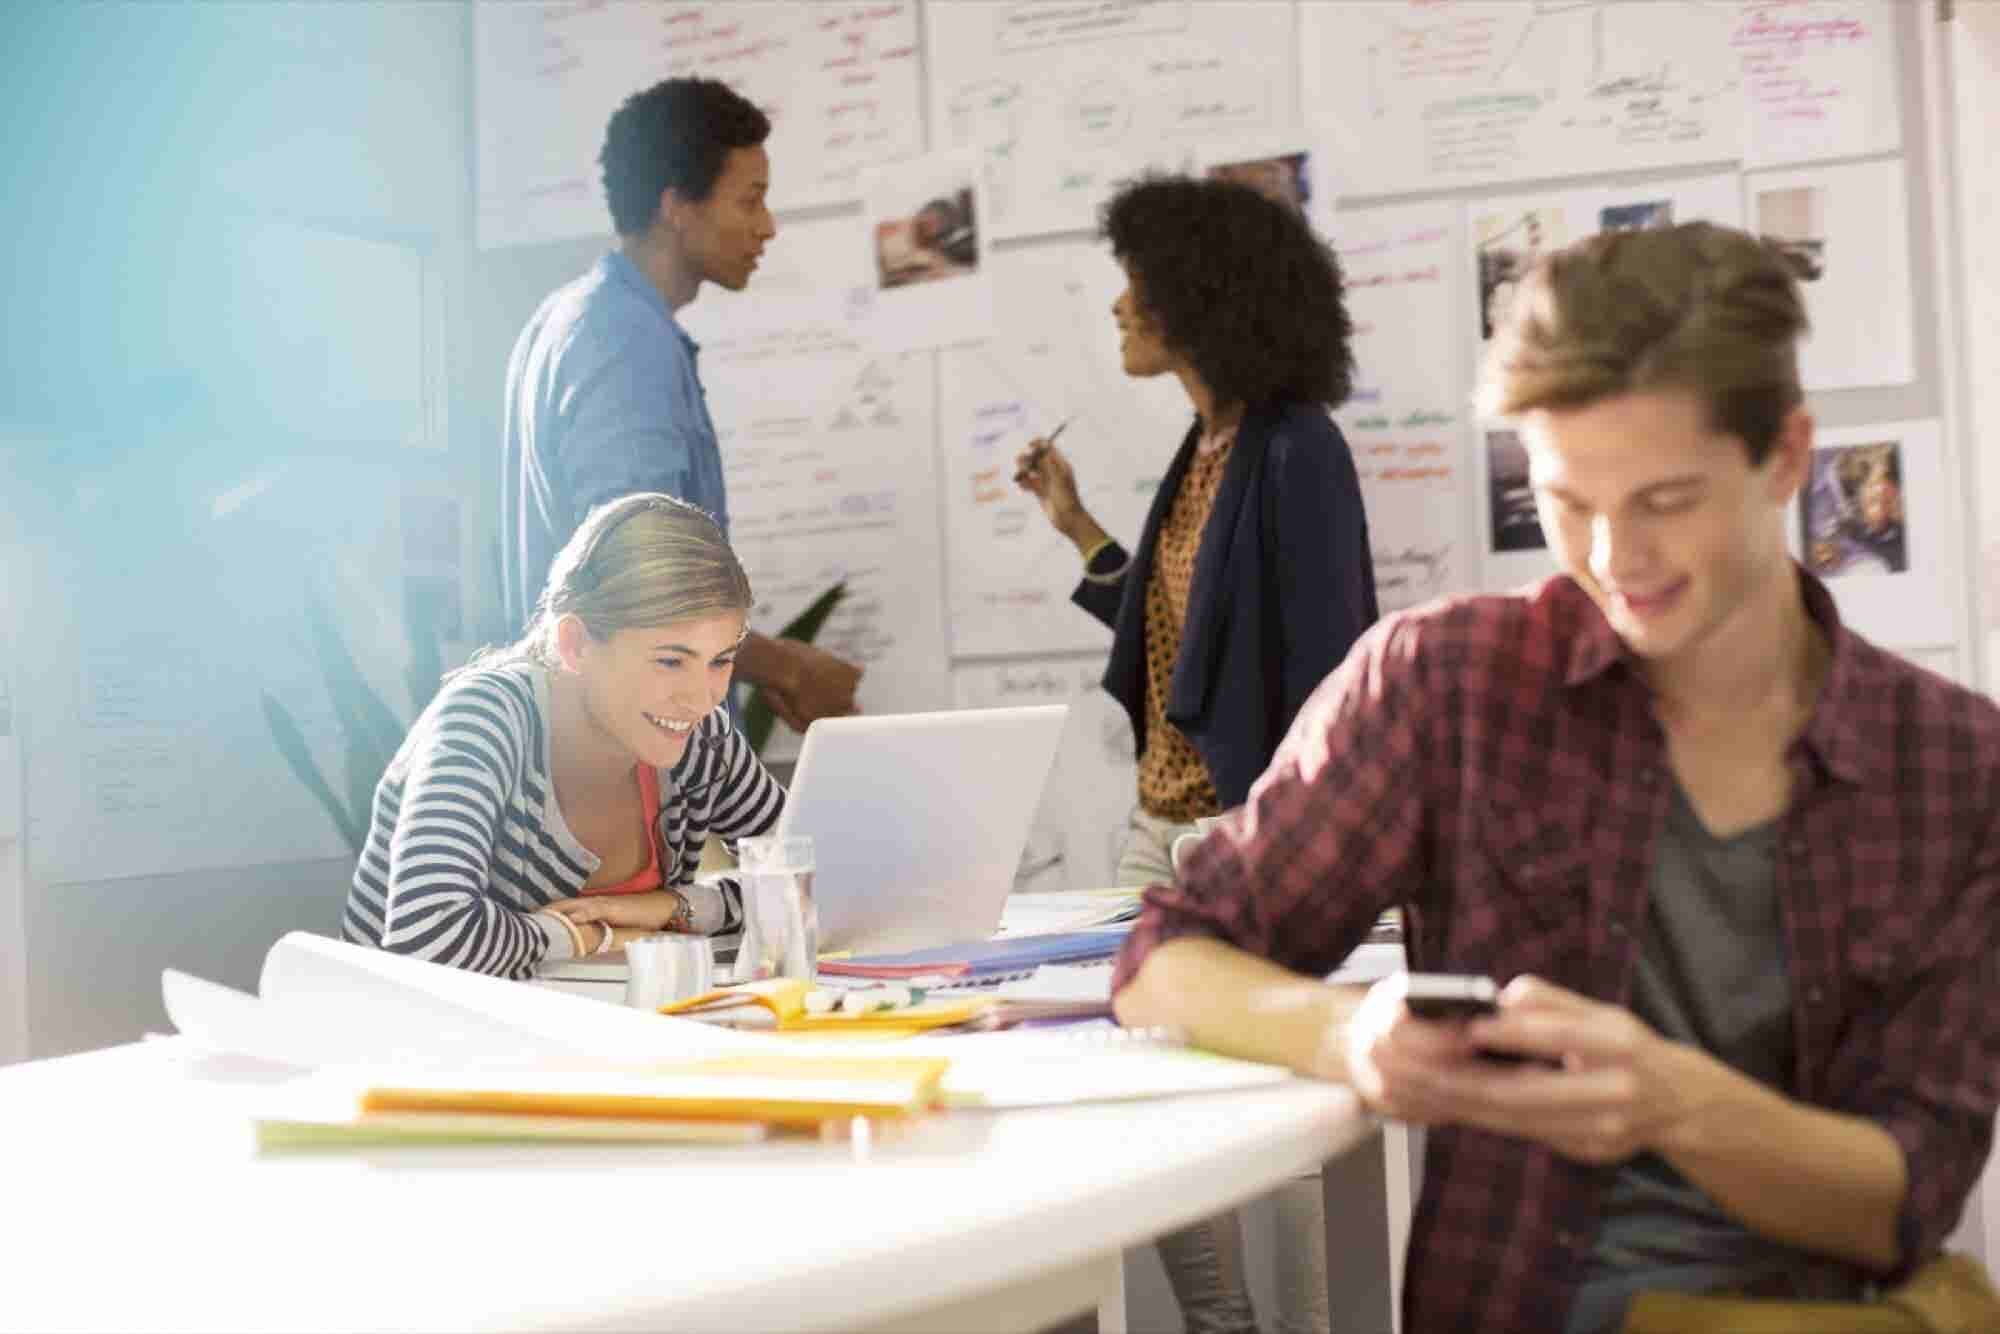 How to Keep Younger Team Members on Task Instead of Snapchat